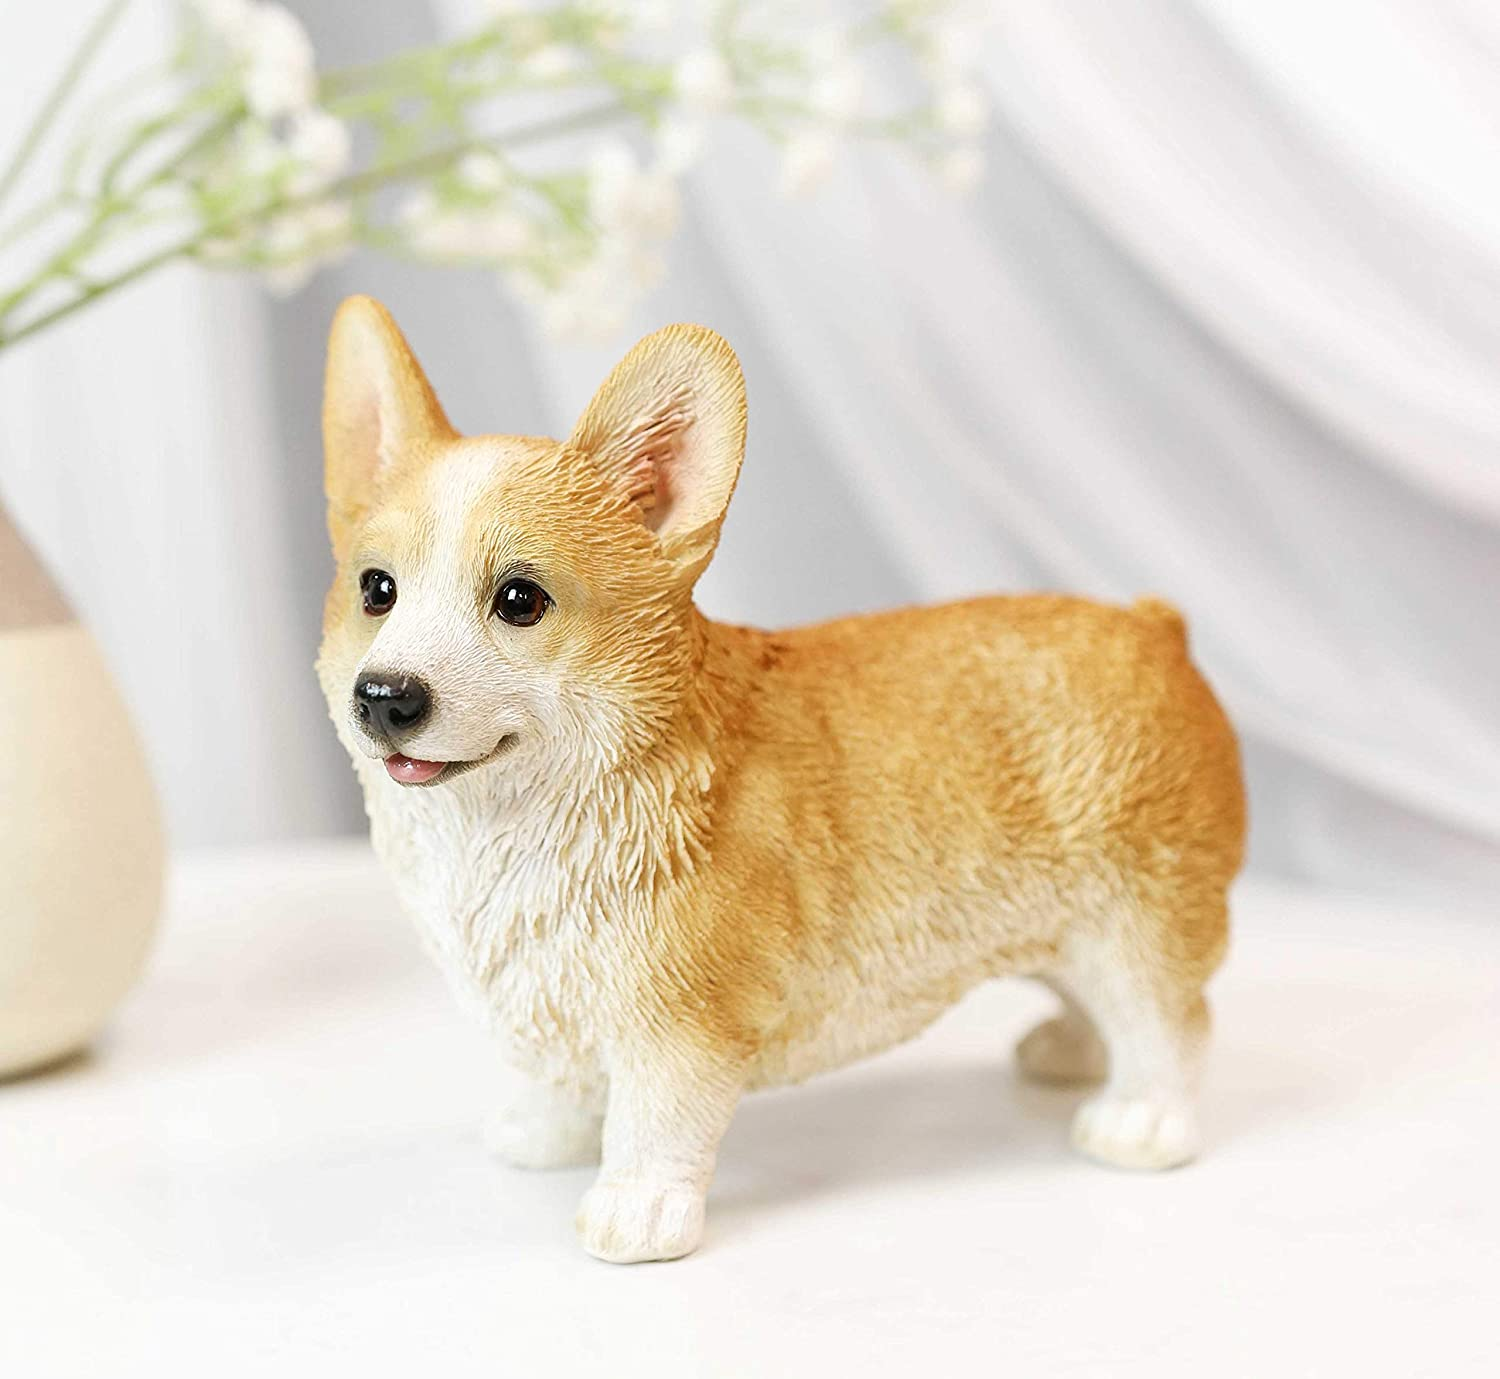 Ebros Lifelike Realistic Standing Pembroke Welsh Corgi Puppy Dog Statue 5.75 Long Fine Pedigree Breed Dogs Gallery Quality Collectible Decor with Glass Eyes Figurine